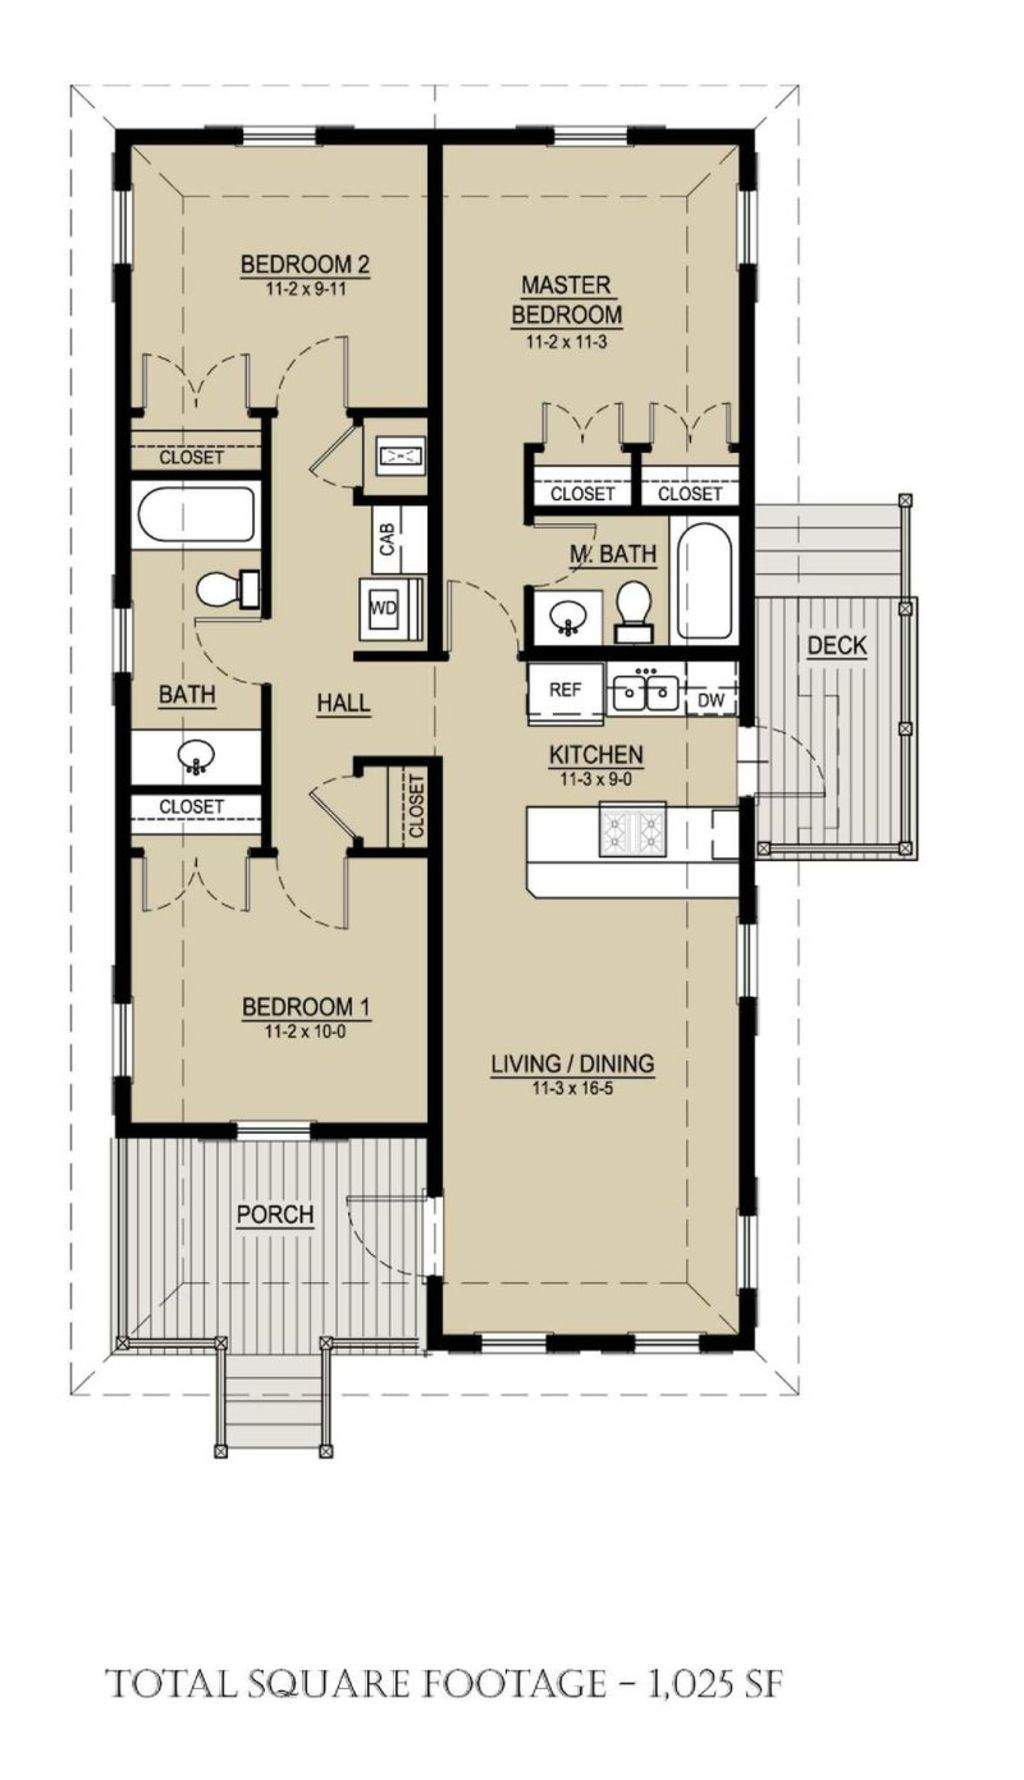 Image Result For 800 Square Feet Floor Plans Container House Plans Cottage Floor Plans House Plans